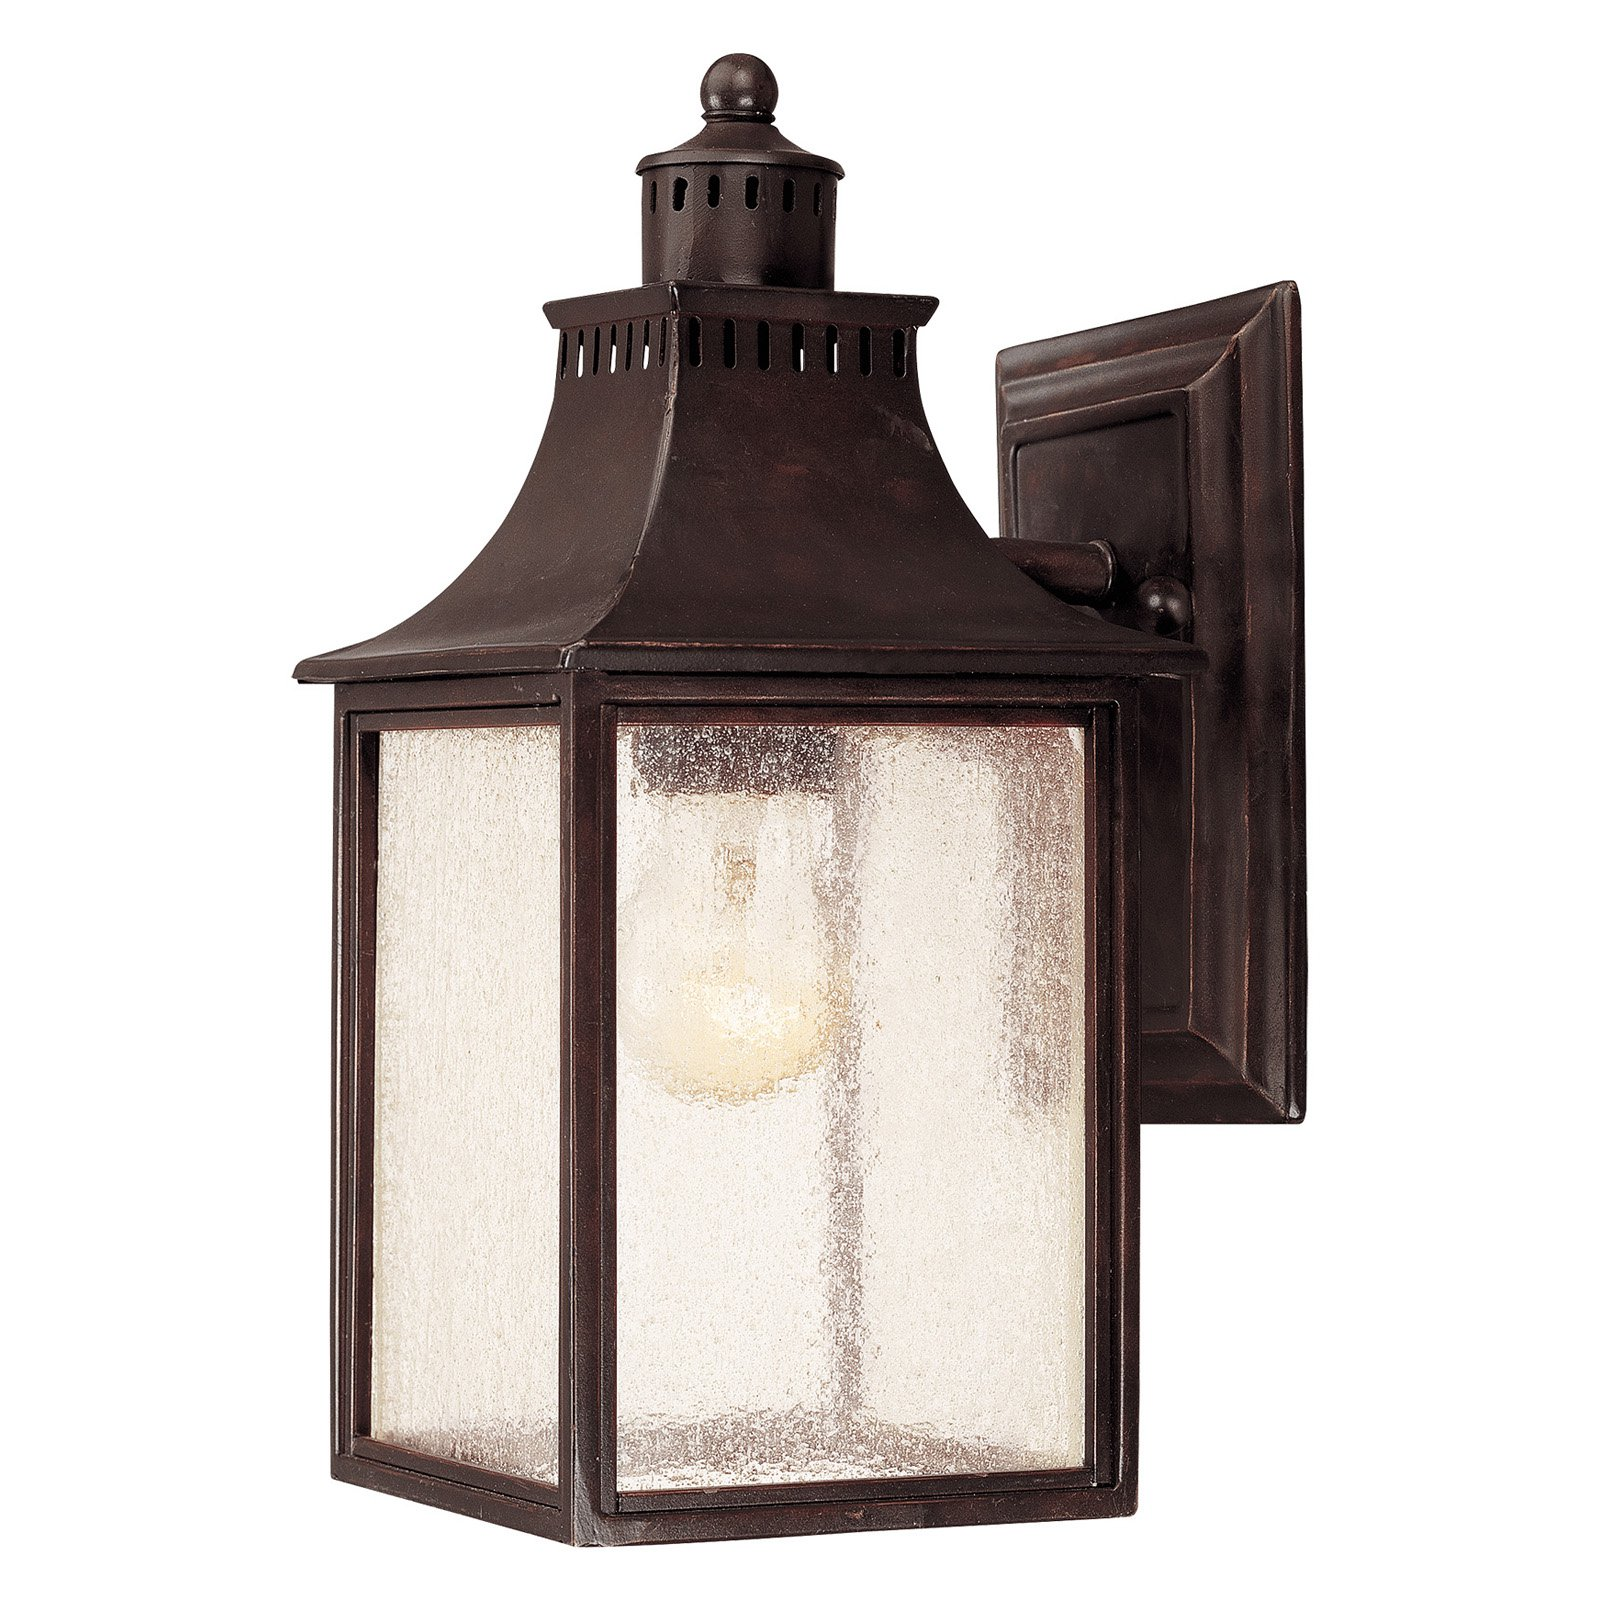 Savoy House Monte Grande 5-254 Outdoor Wall Lantern